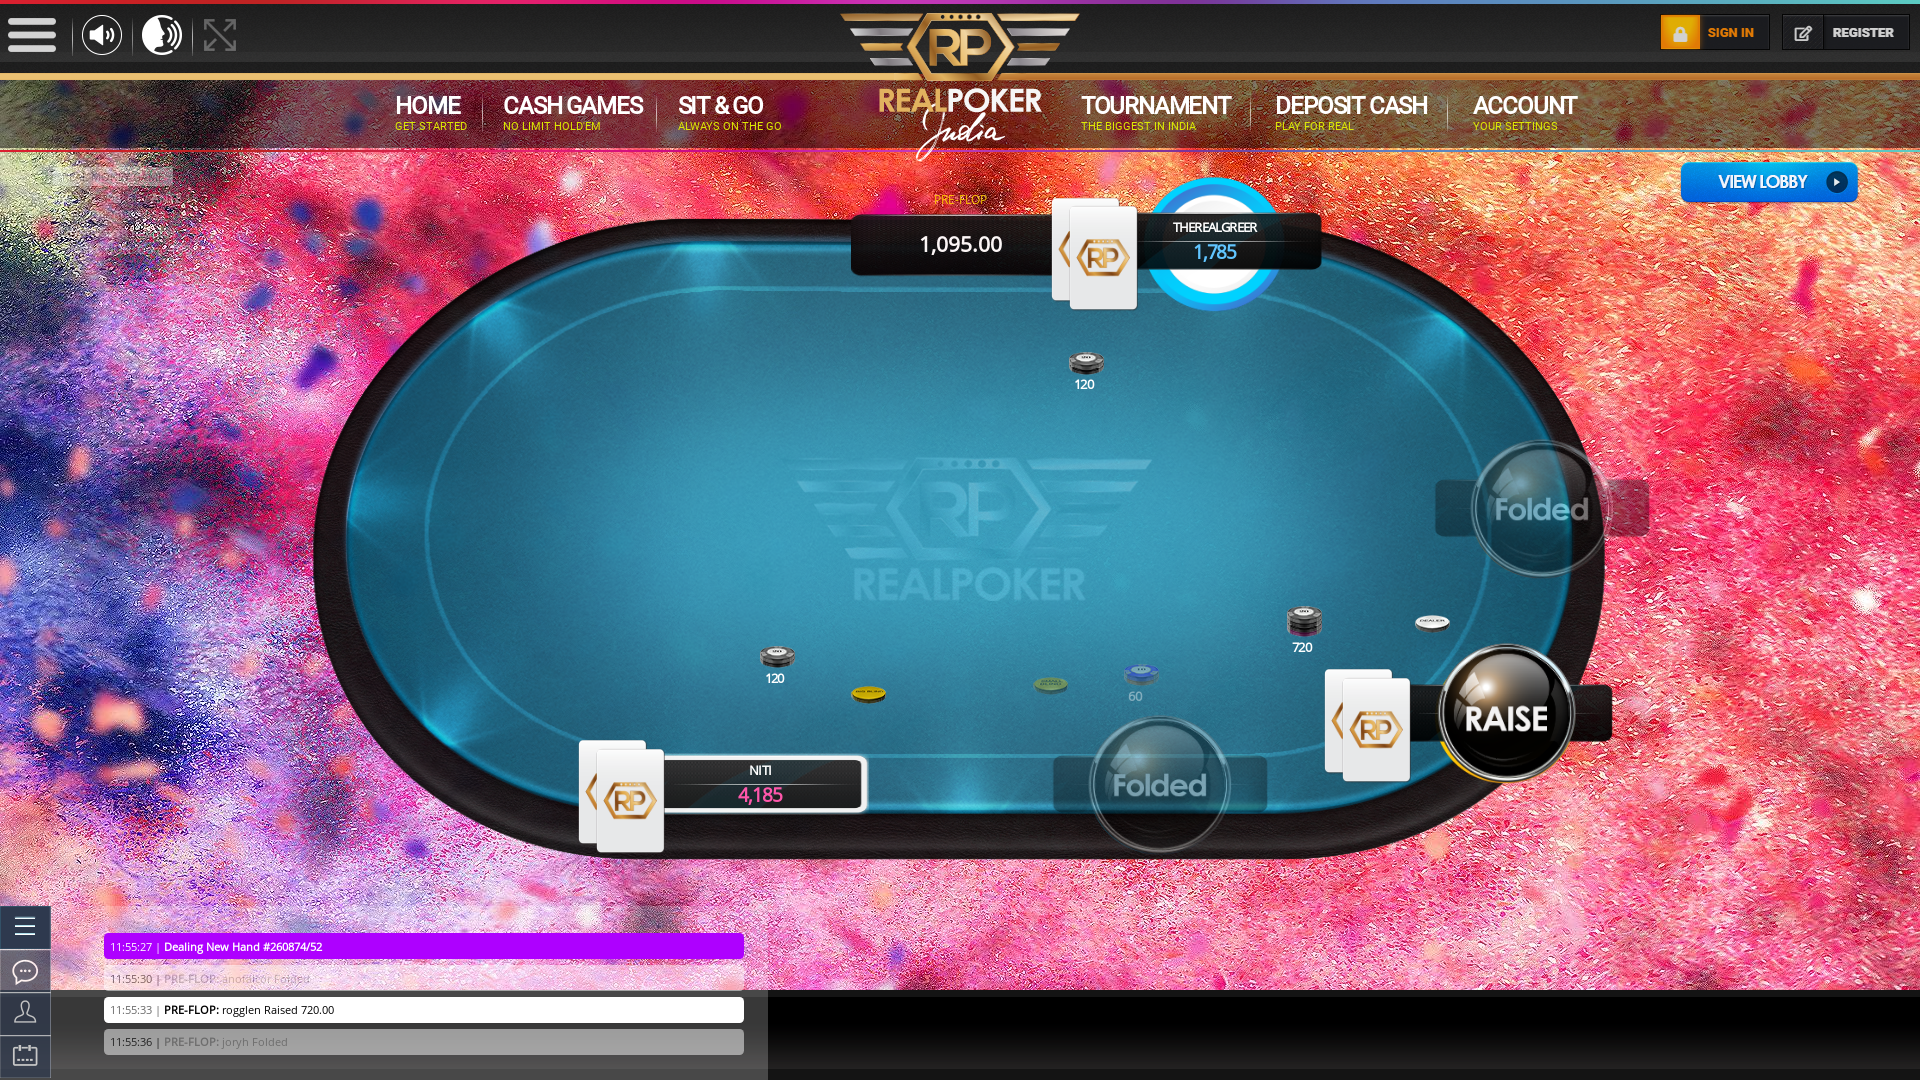 Real poker 10 player table in the 38th minute of the match